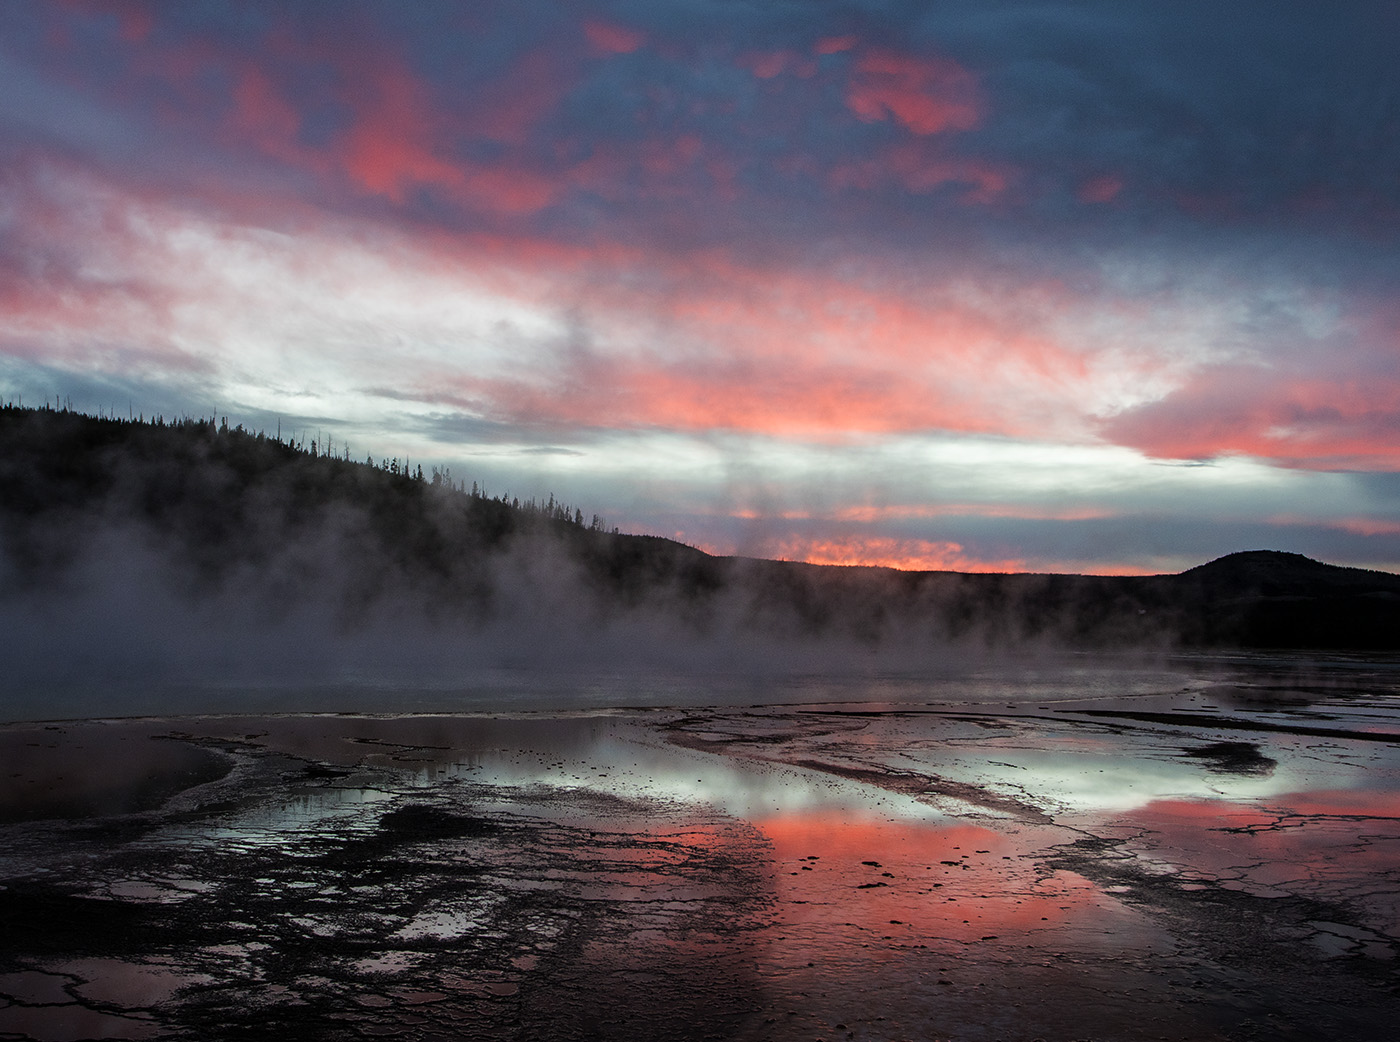 Sunset Sky at Grand Prismatic